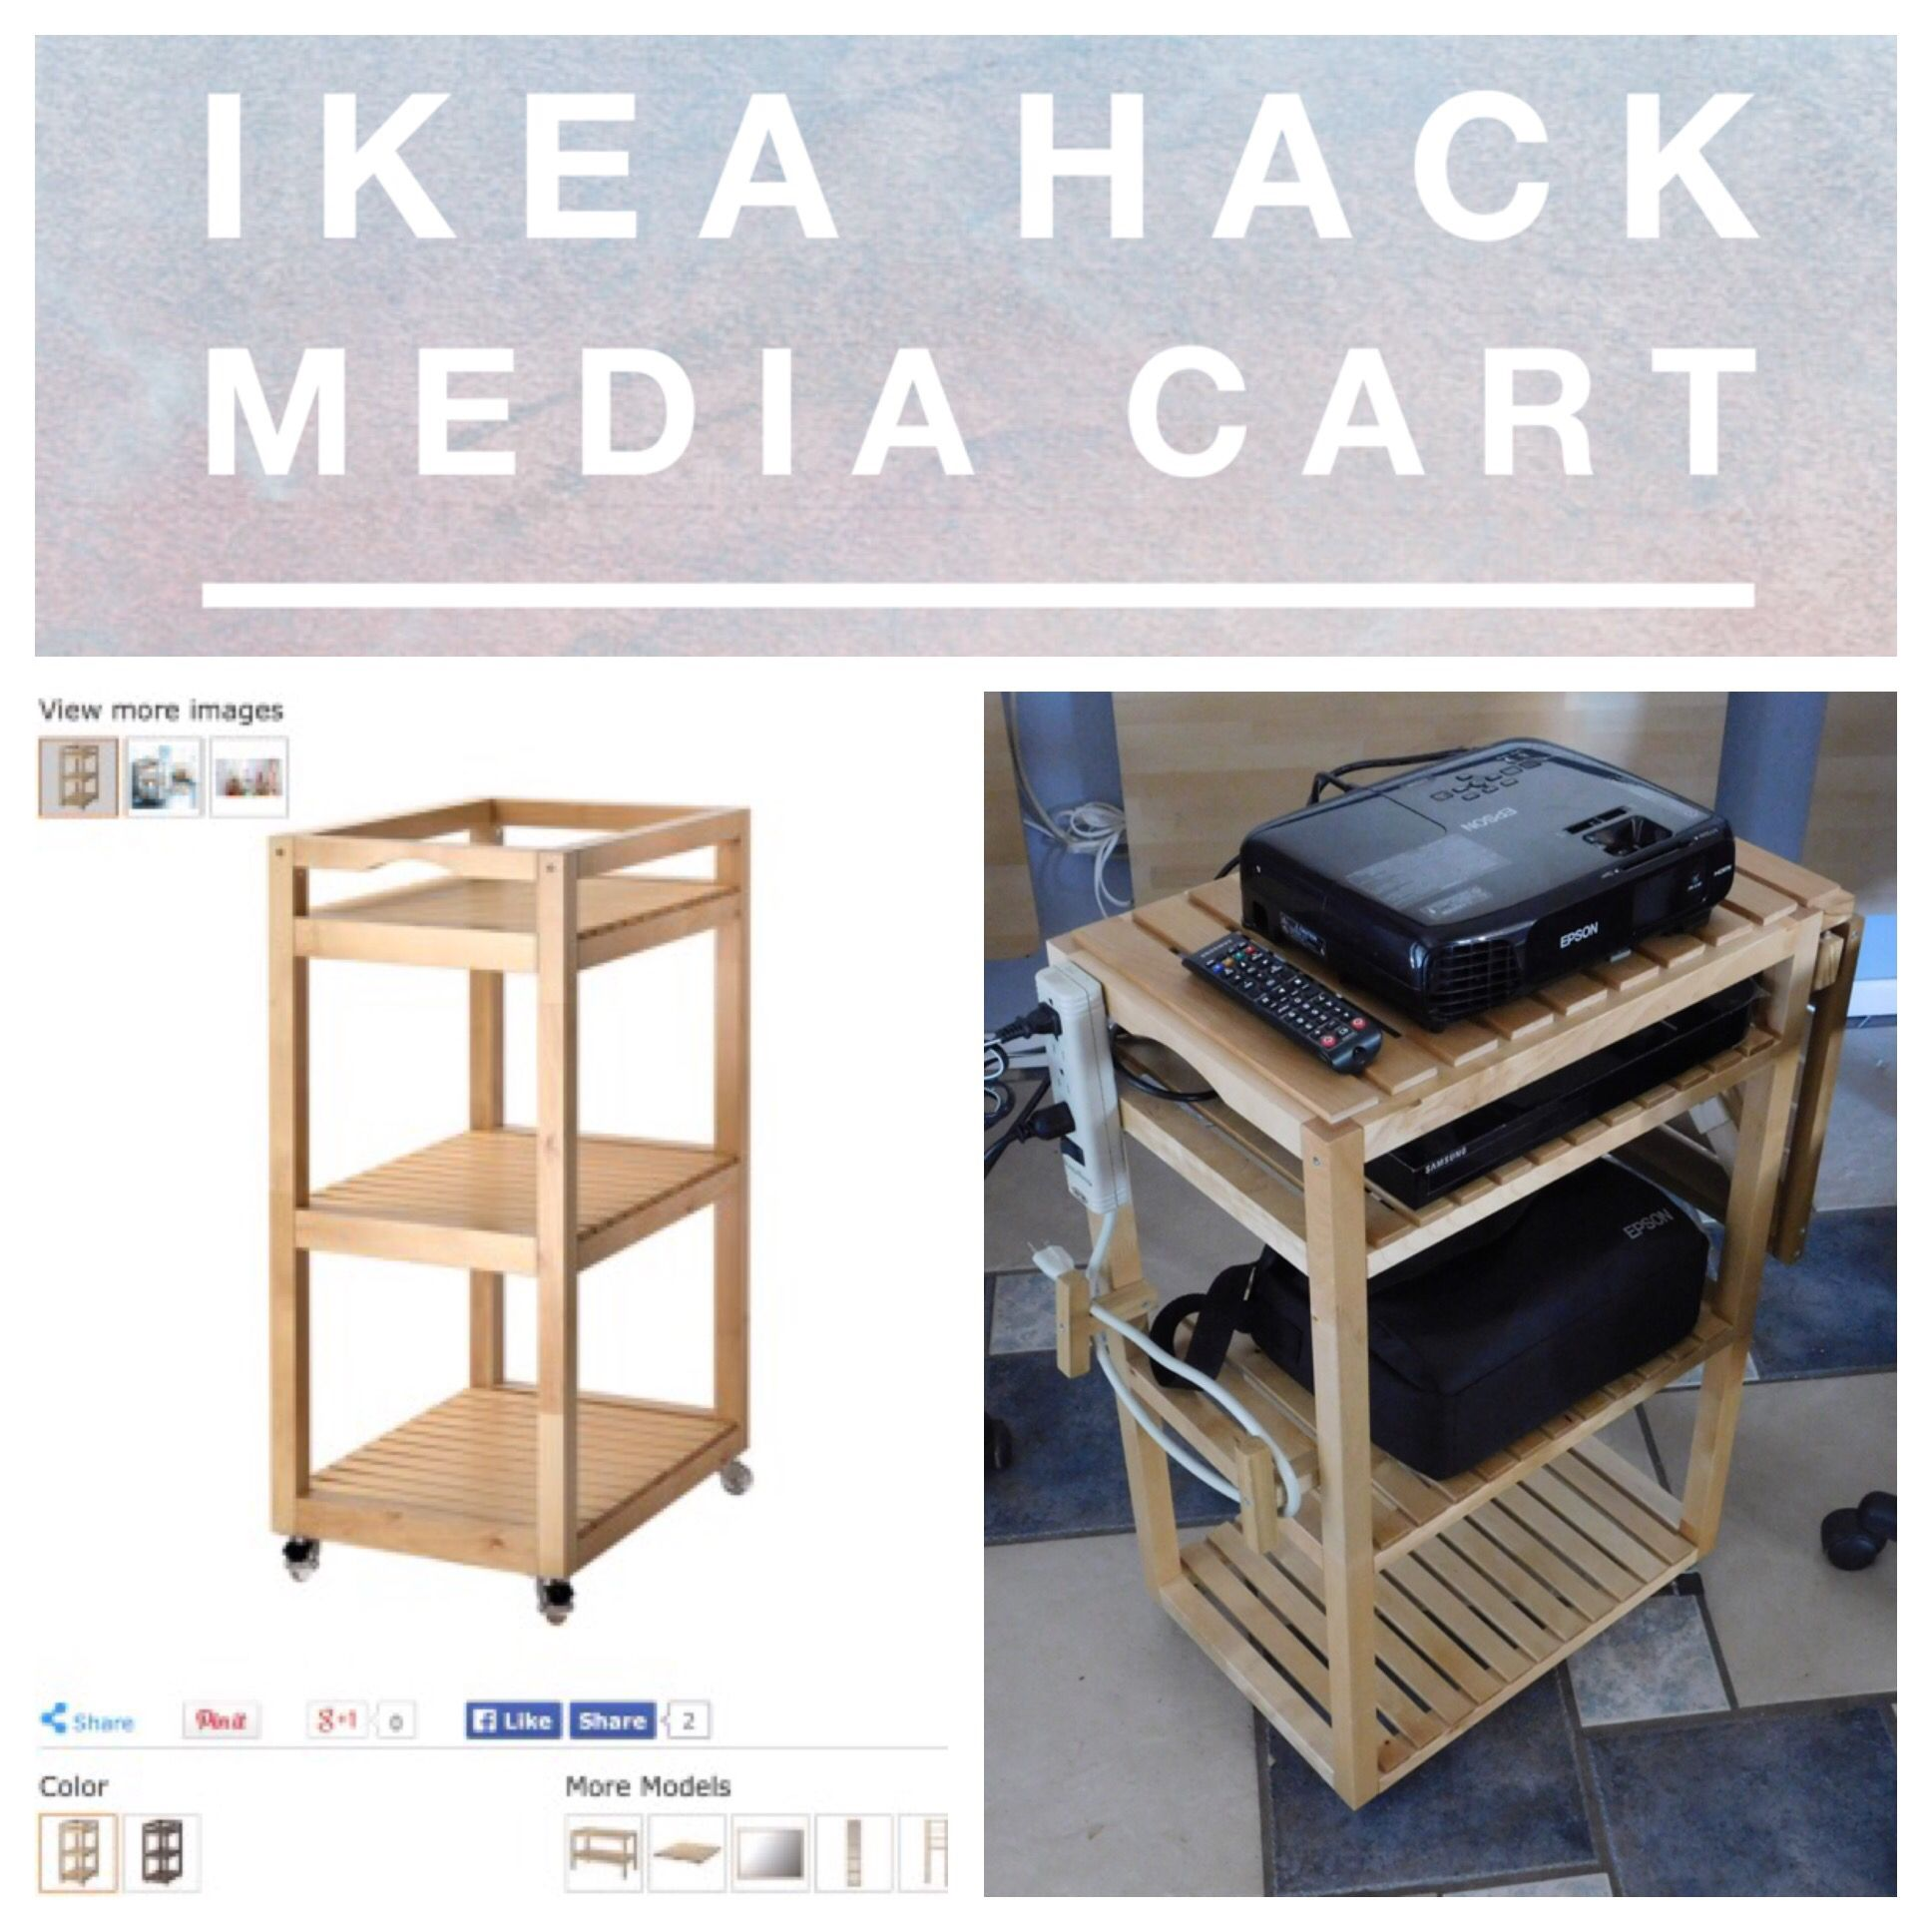 Create A Media Cart From A Molger Birch Cart You Can Get From Ikea